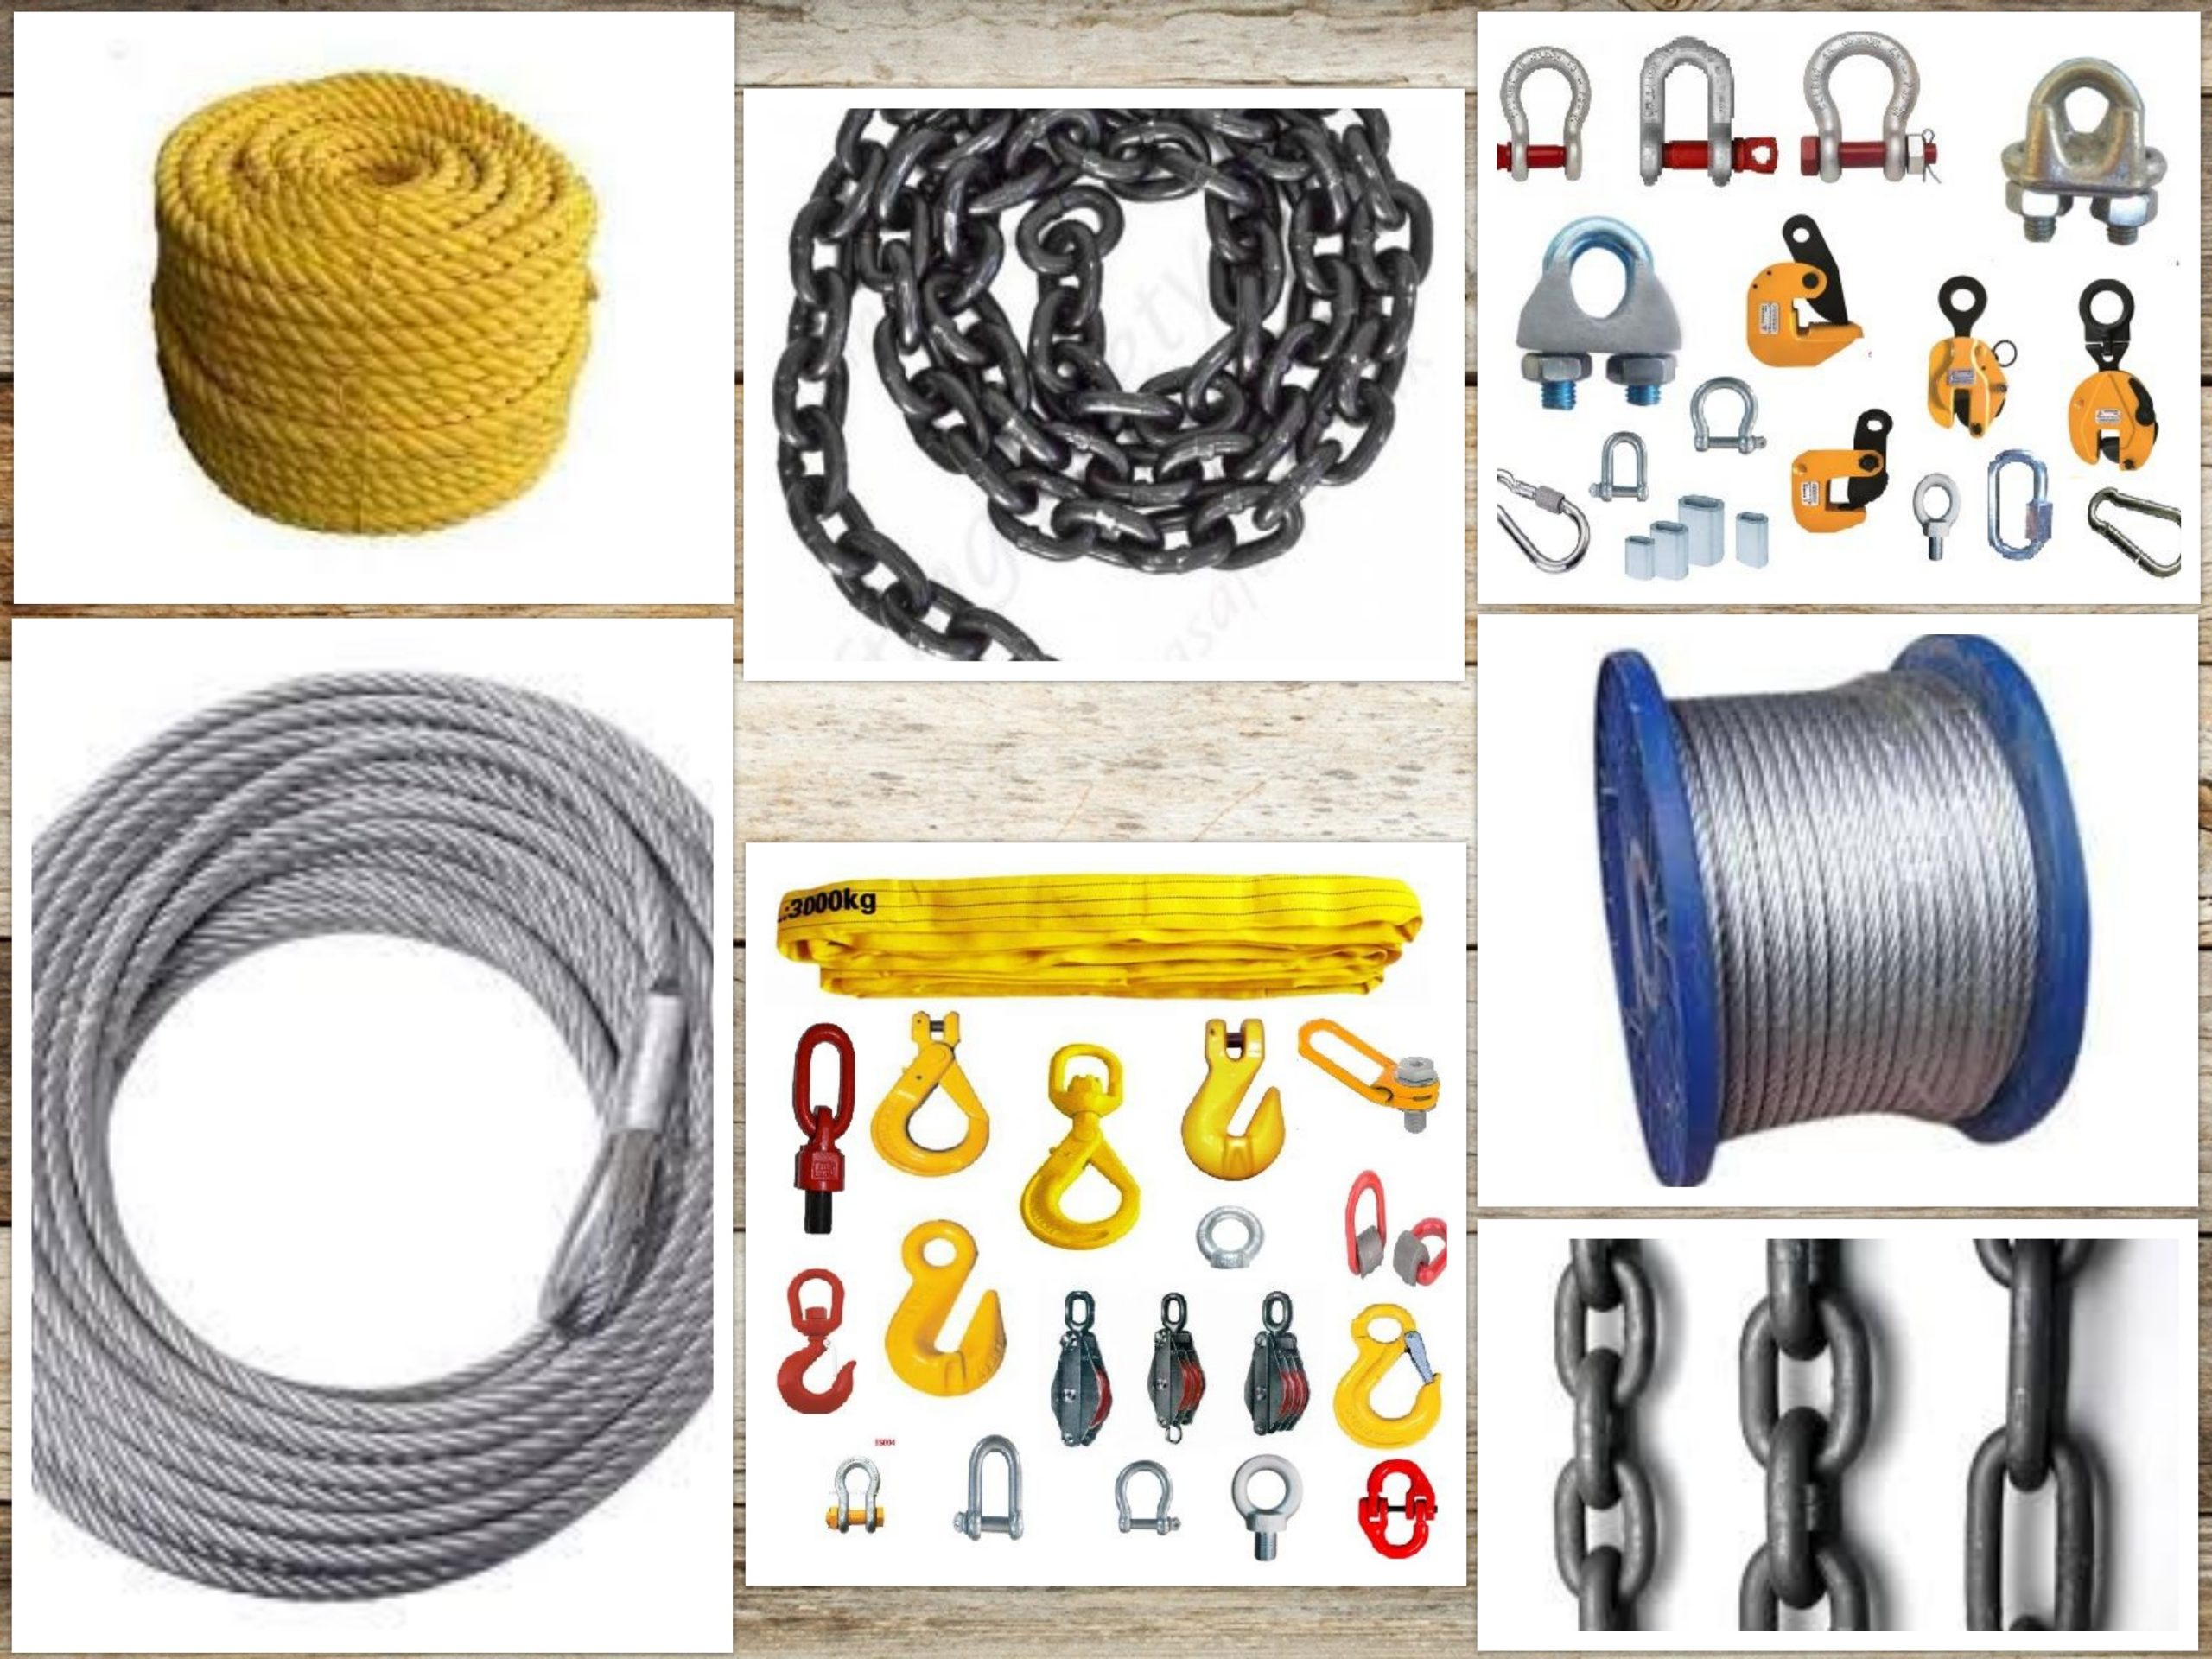 Products - Chains, Ropes and Tackles